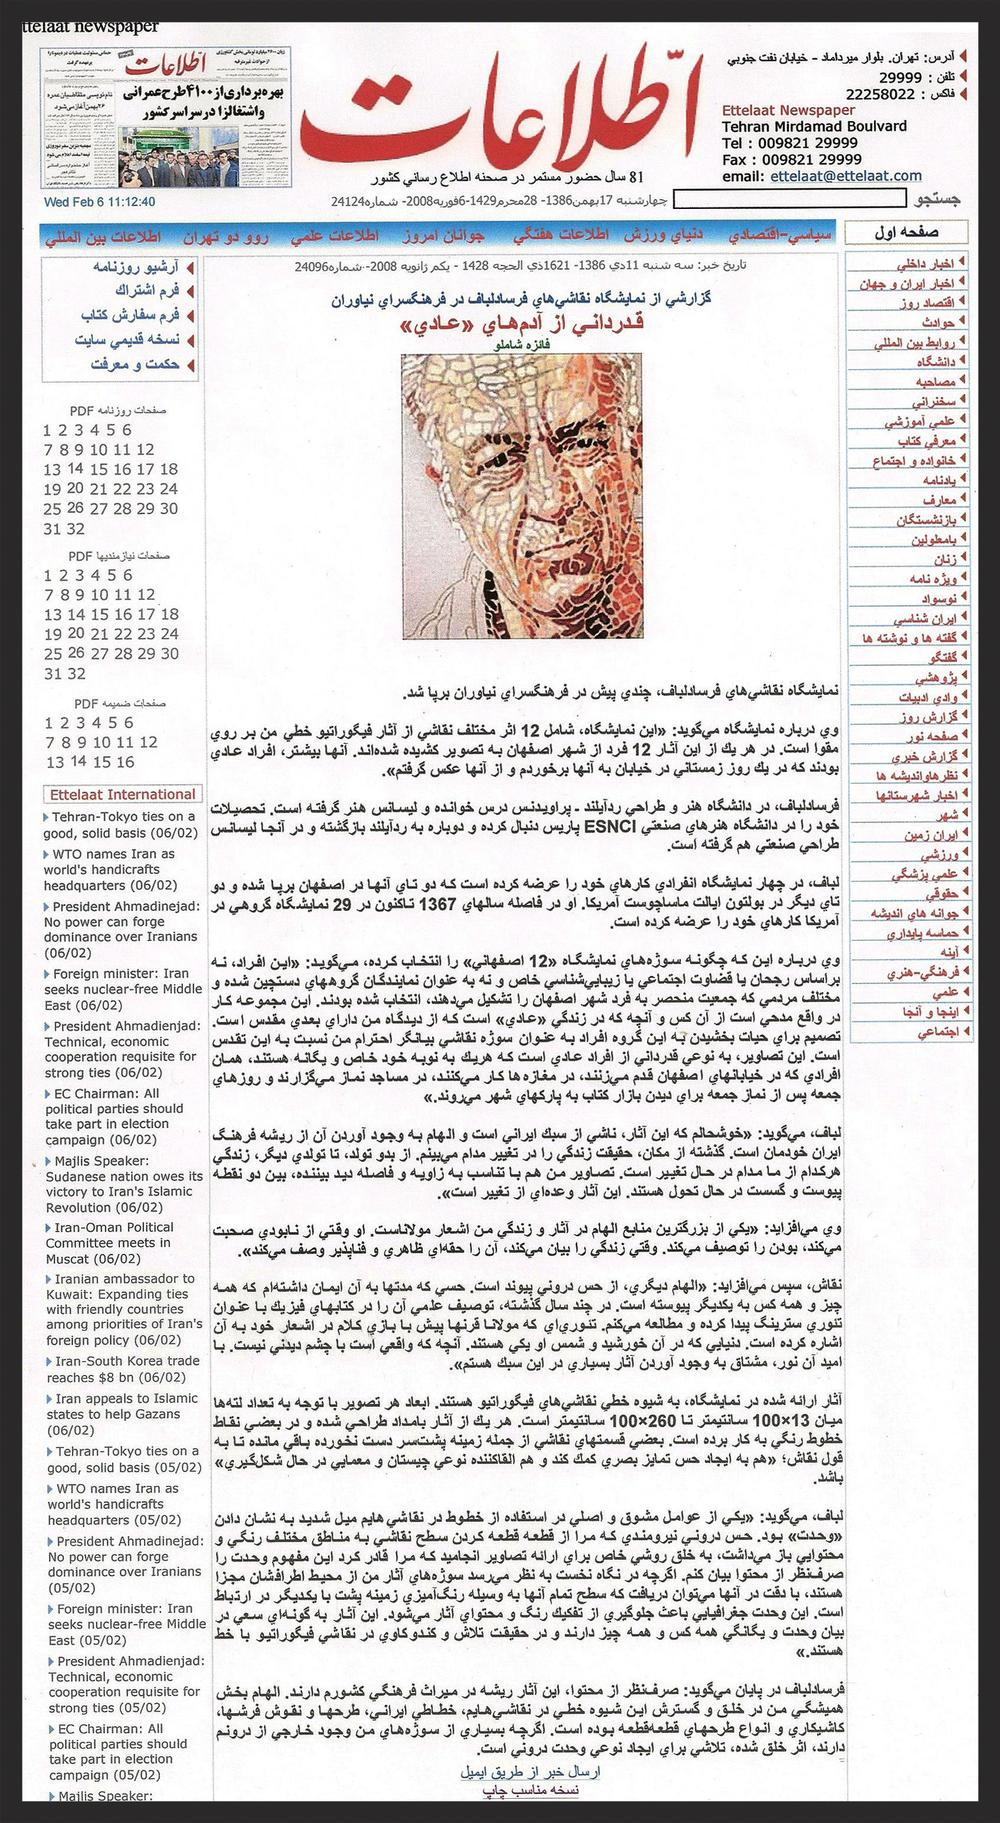 Ettelaat Newspaper.jpg